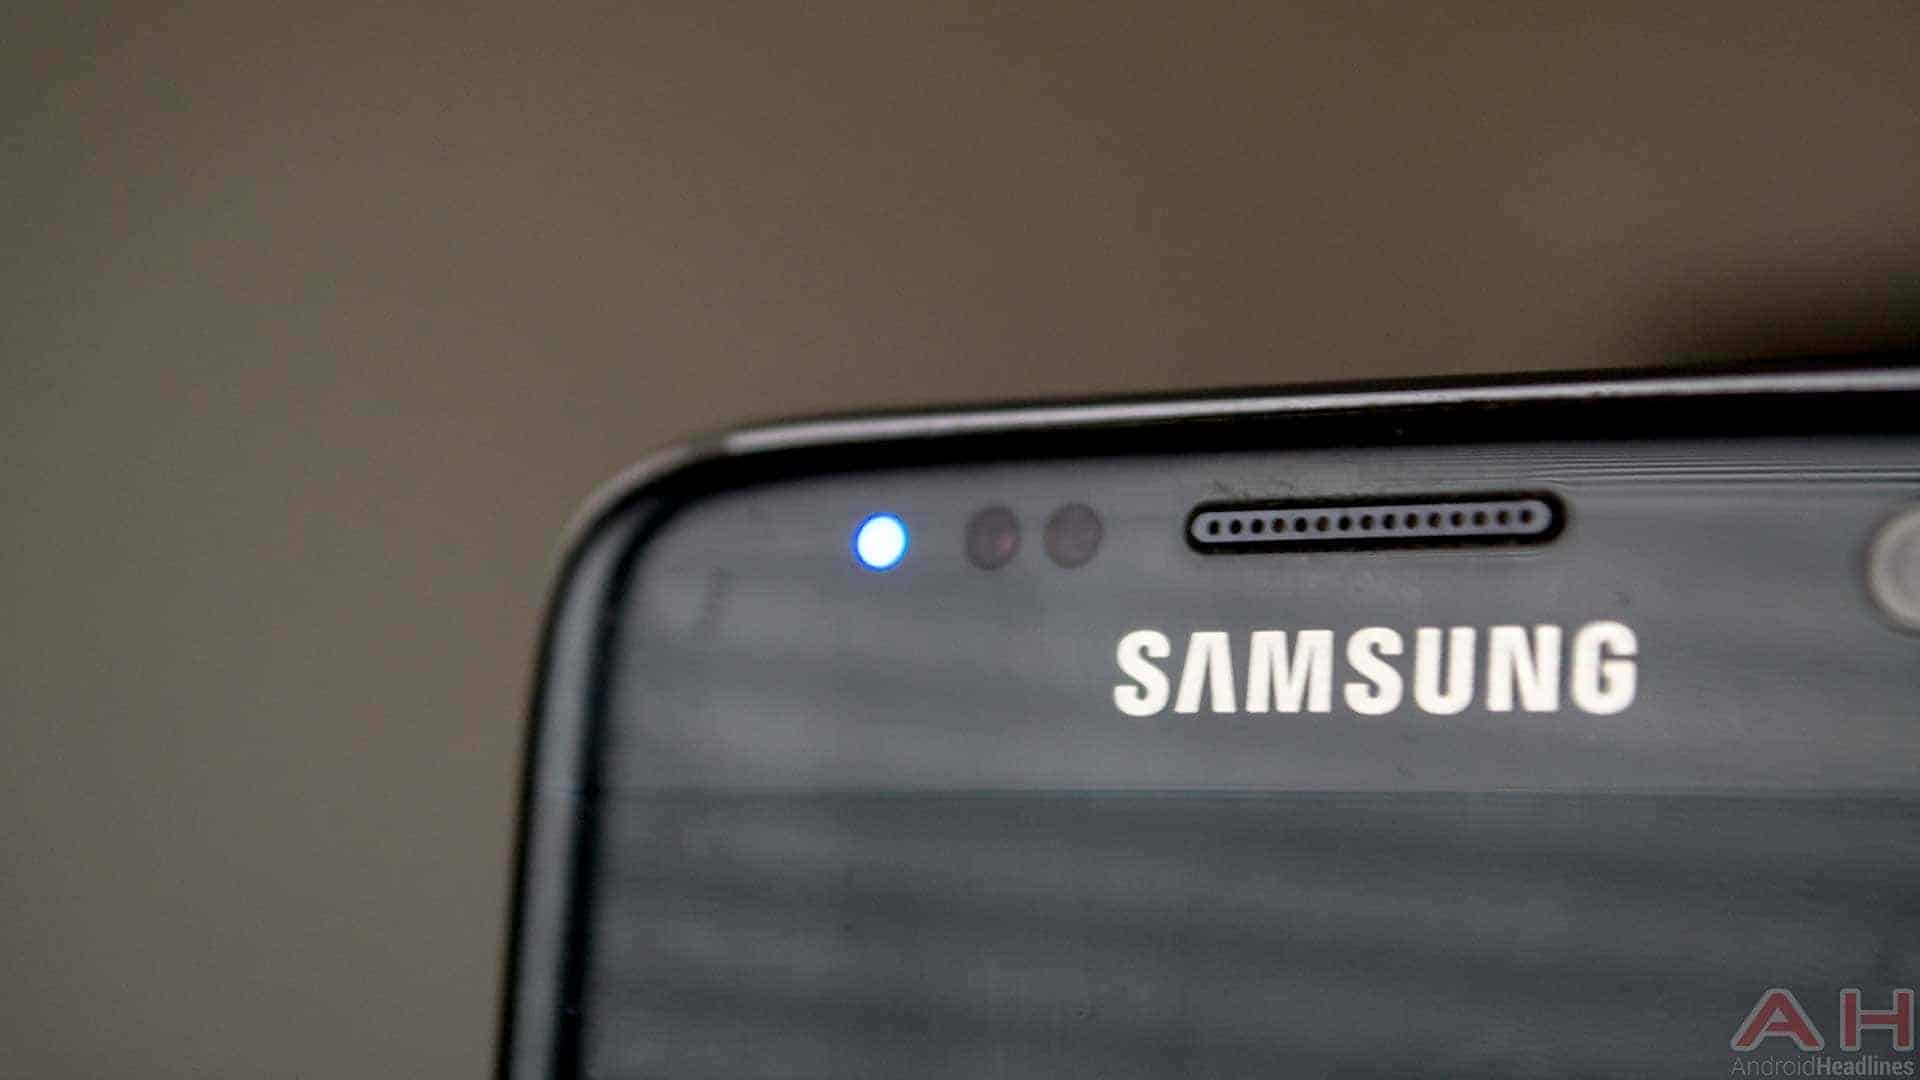 Samsung India To Debut New Galaxy On Phone With 18.5:9 Screen